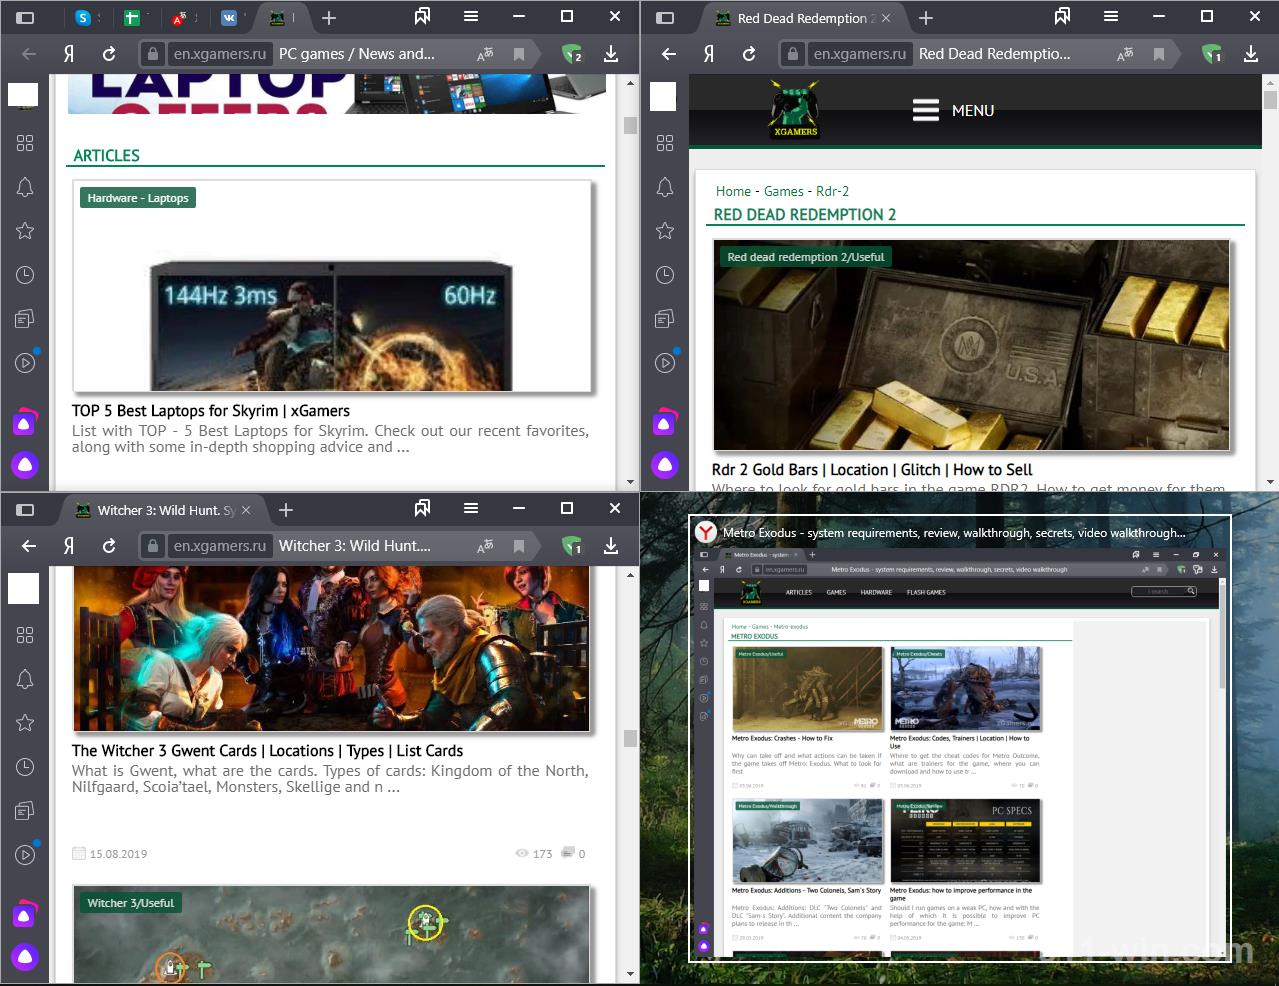 An example of what a split screen looks like in 4 parts in Windows 10